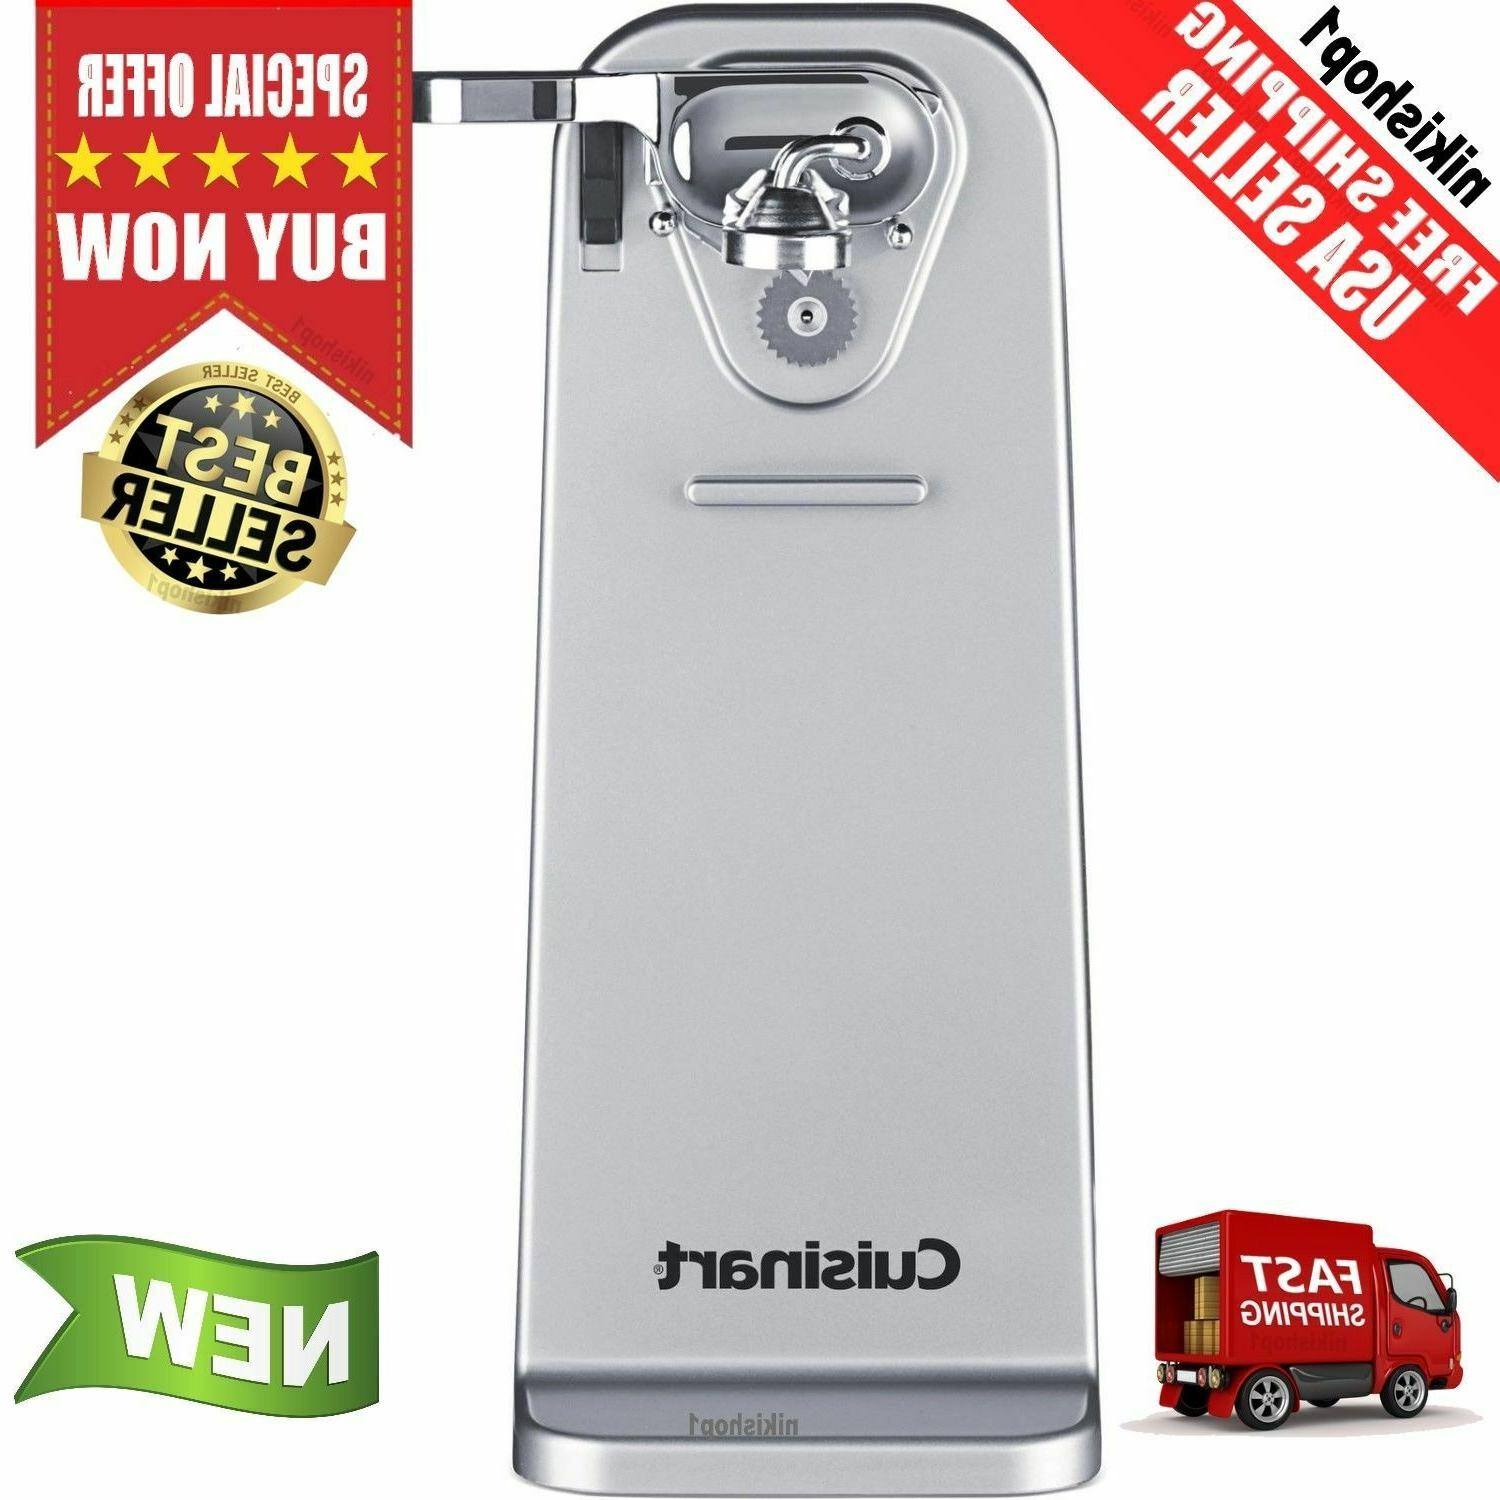 cco 55 deluxe can opener